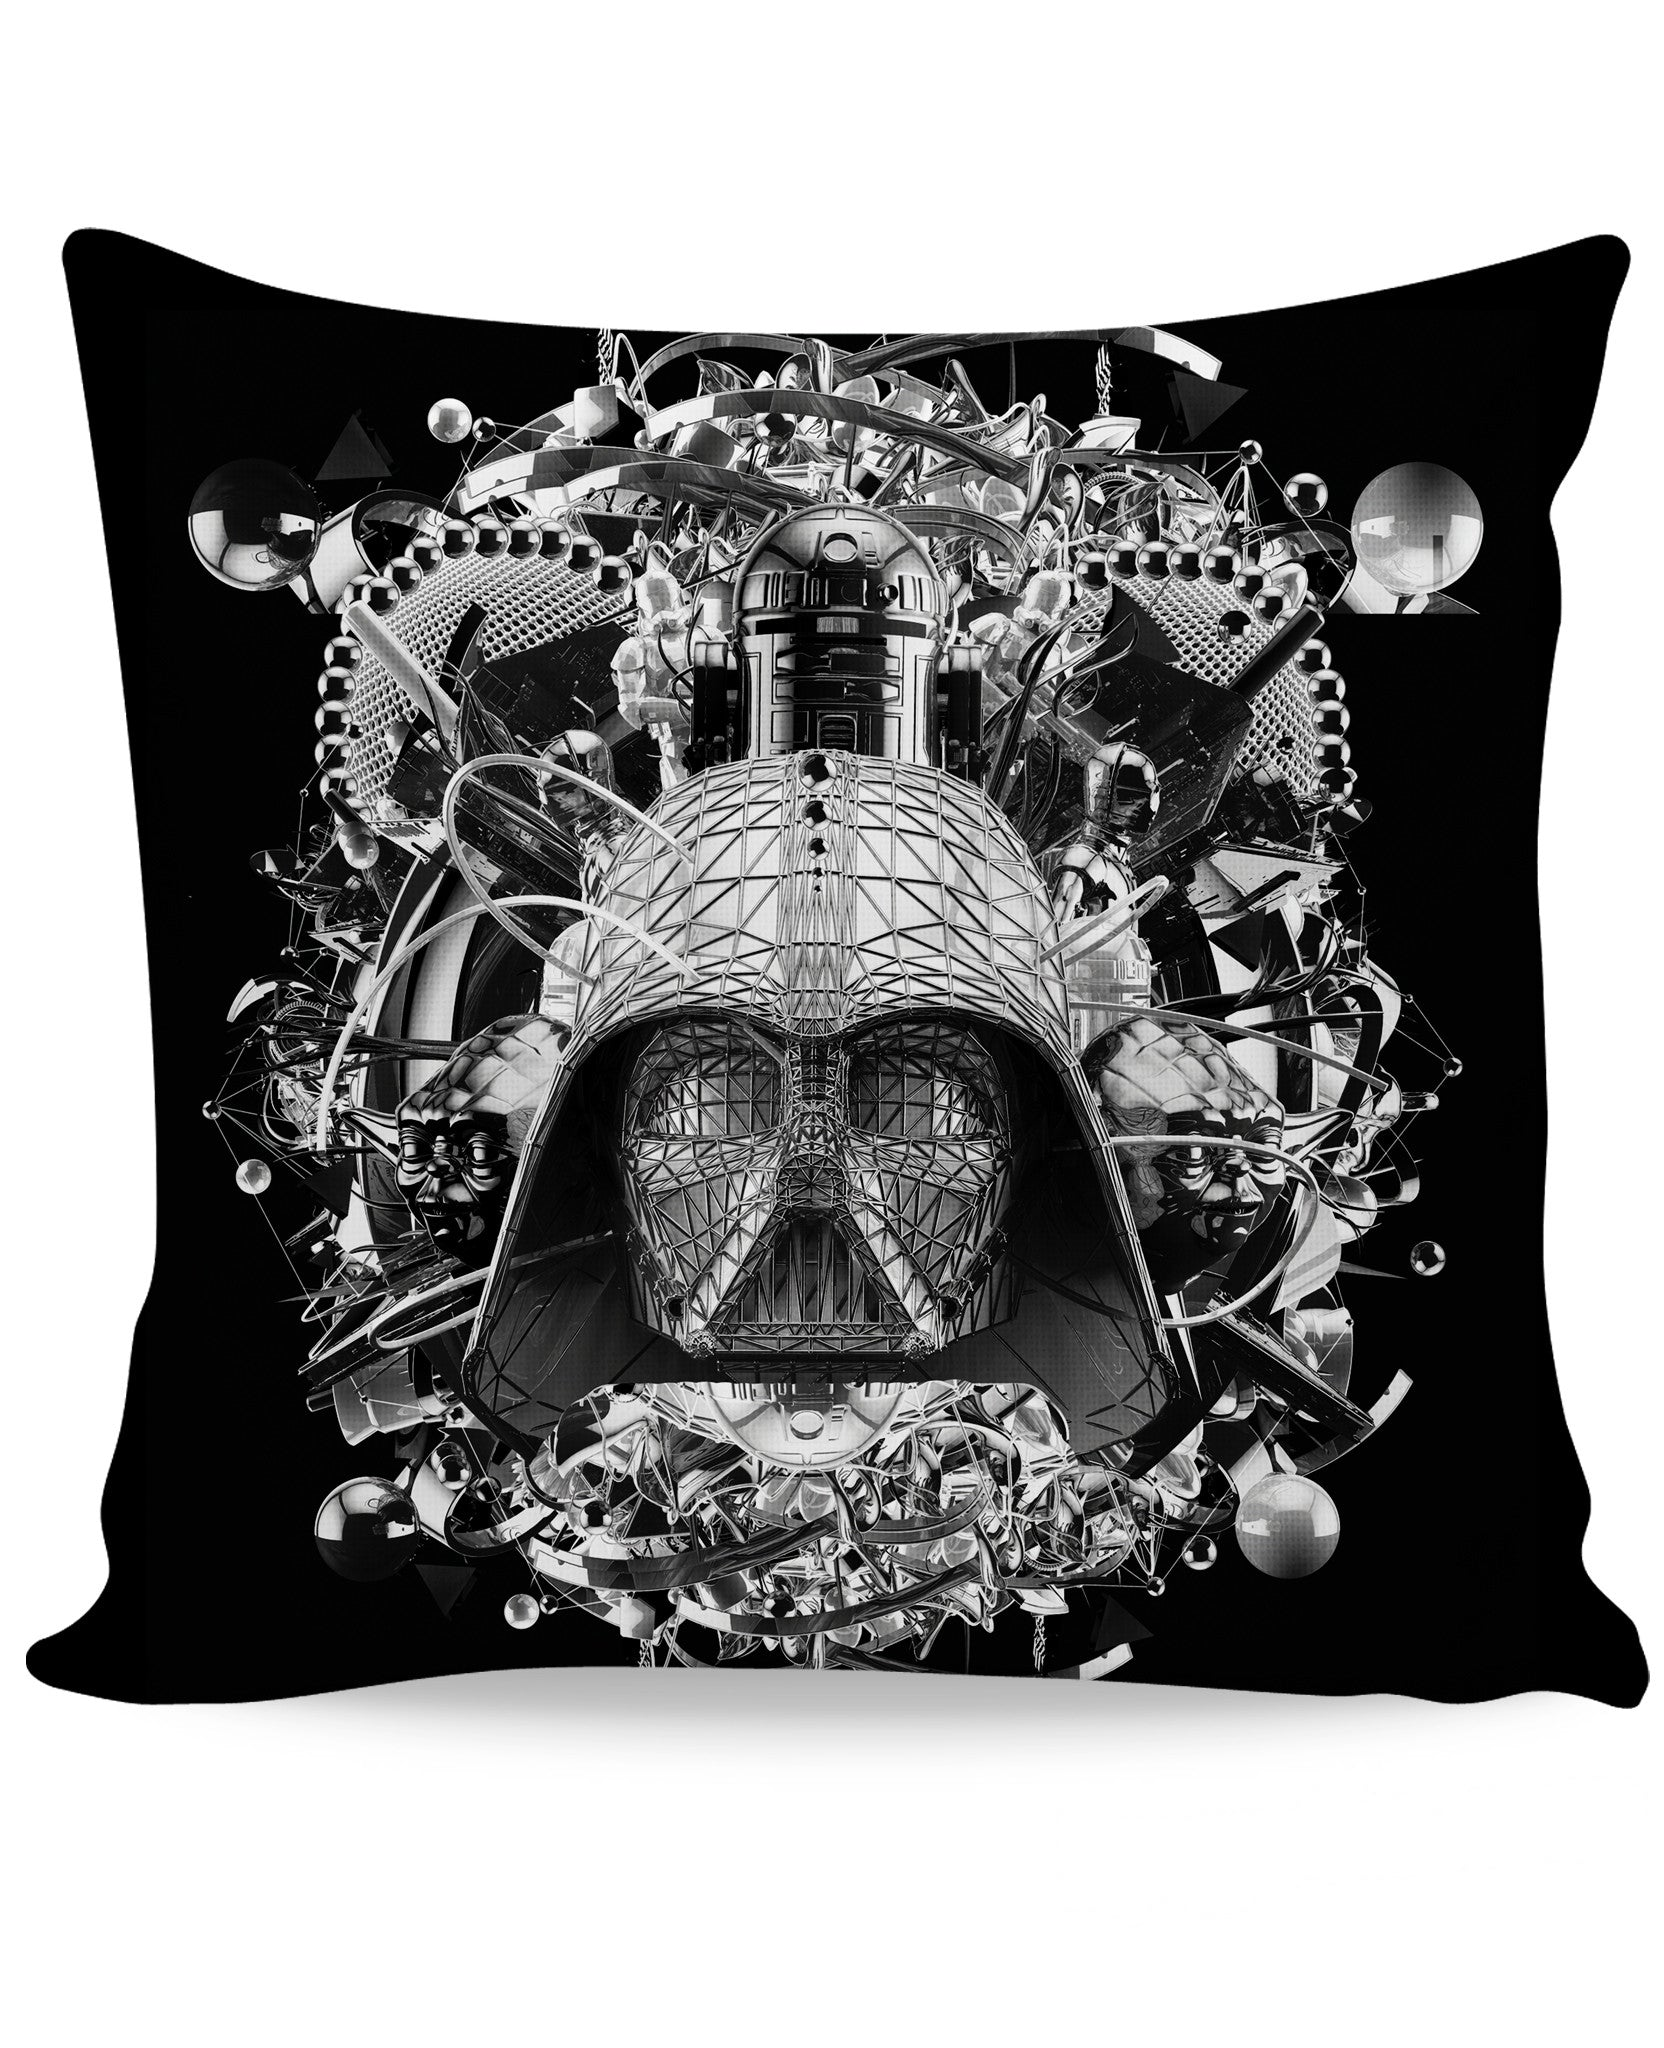 Digital Empire B&W Couch Pillow